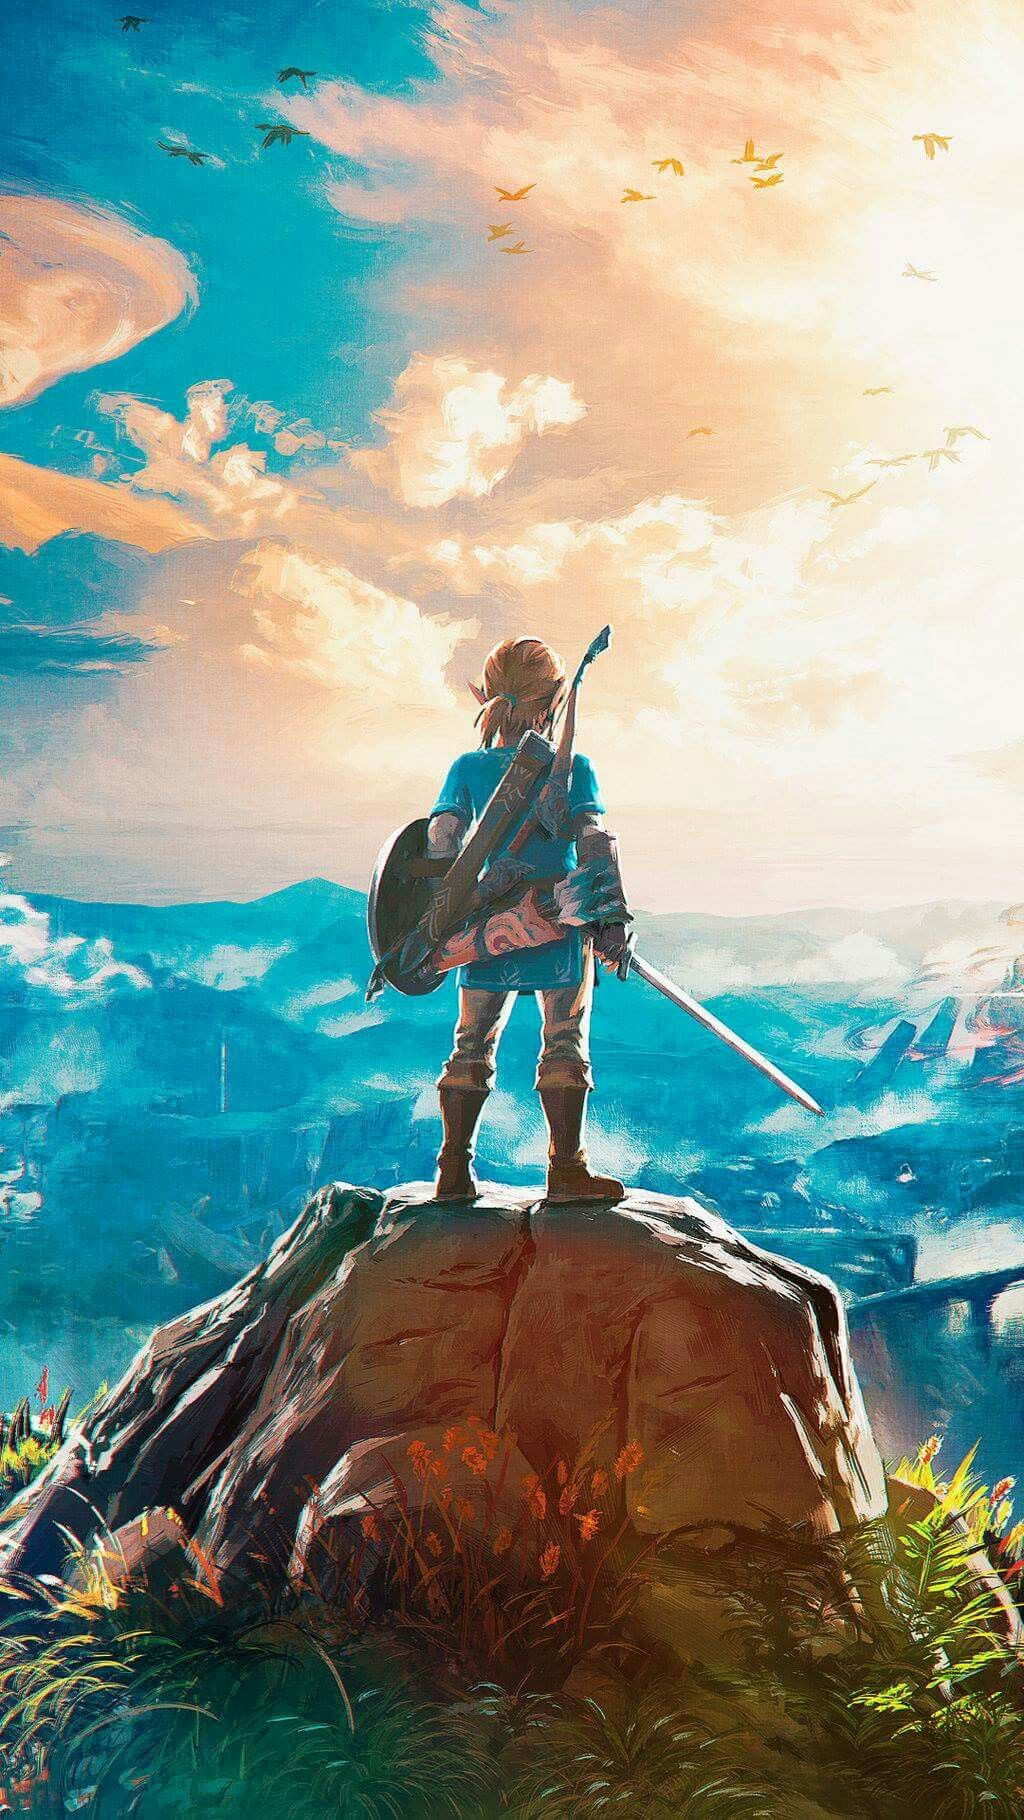 The Legend of Zelda Breath of the Wild Mobile Wallpaper